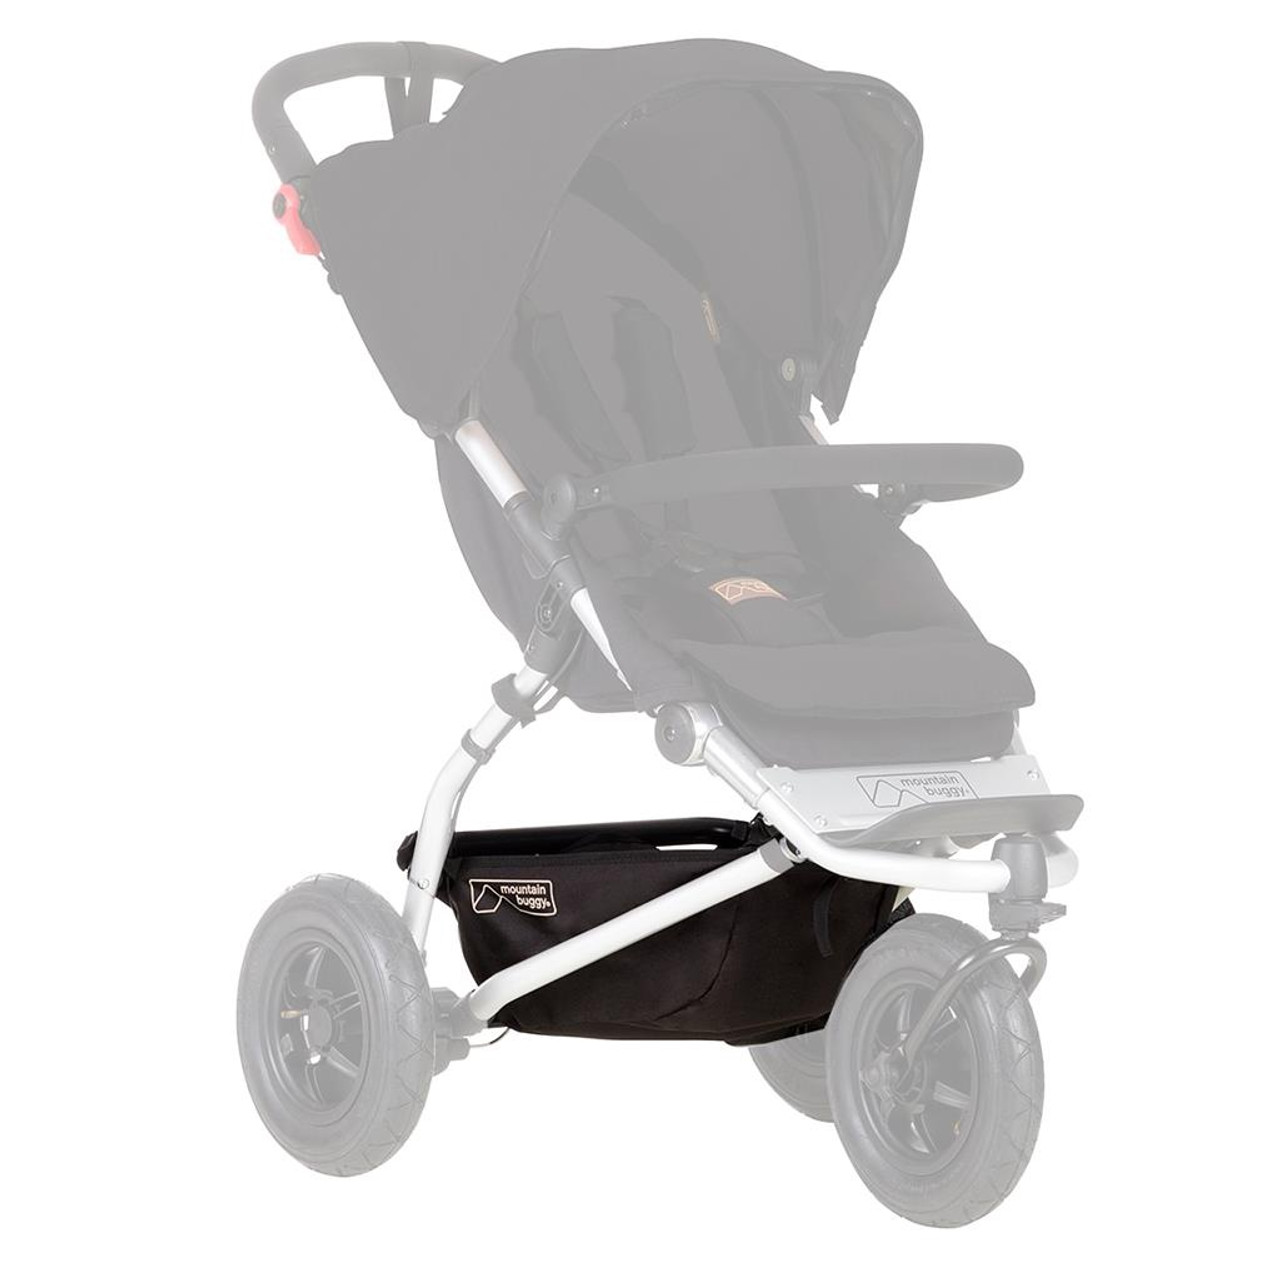 Mountain Buggy Swift Parcel Gear Tray 2015+ at Baby Barn Discounts Replacement gear tray (parcel tray) for the NEW Mountain Buggy Swift stroller (manufactured 2015).